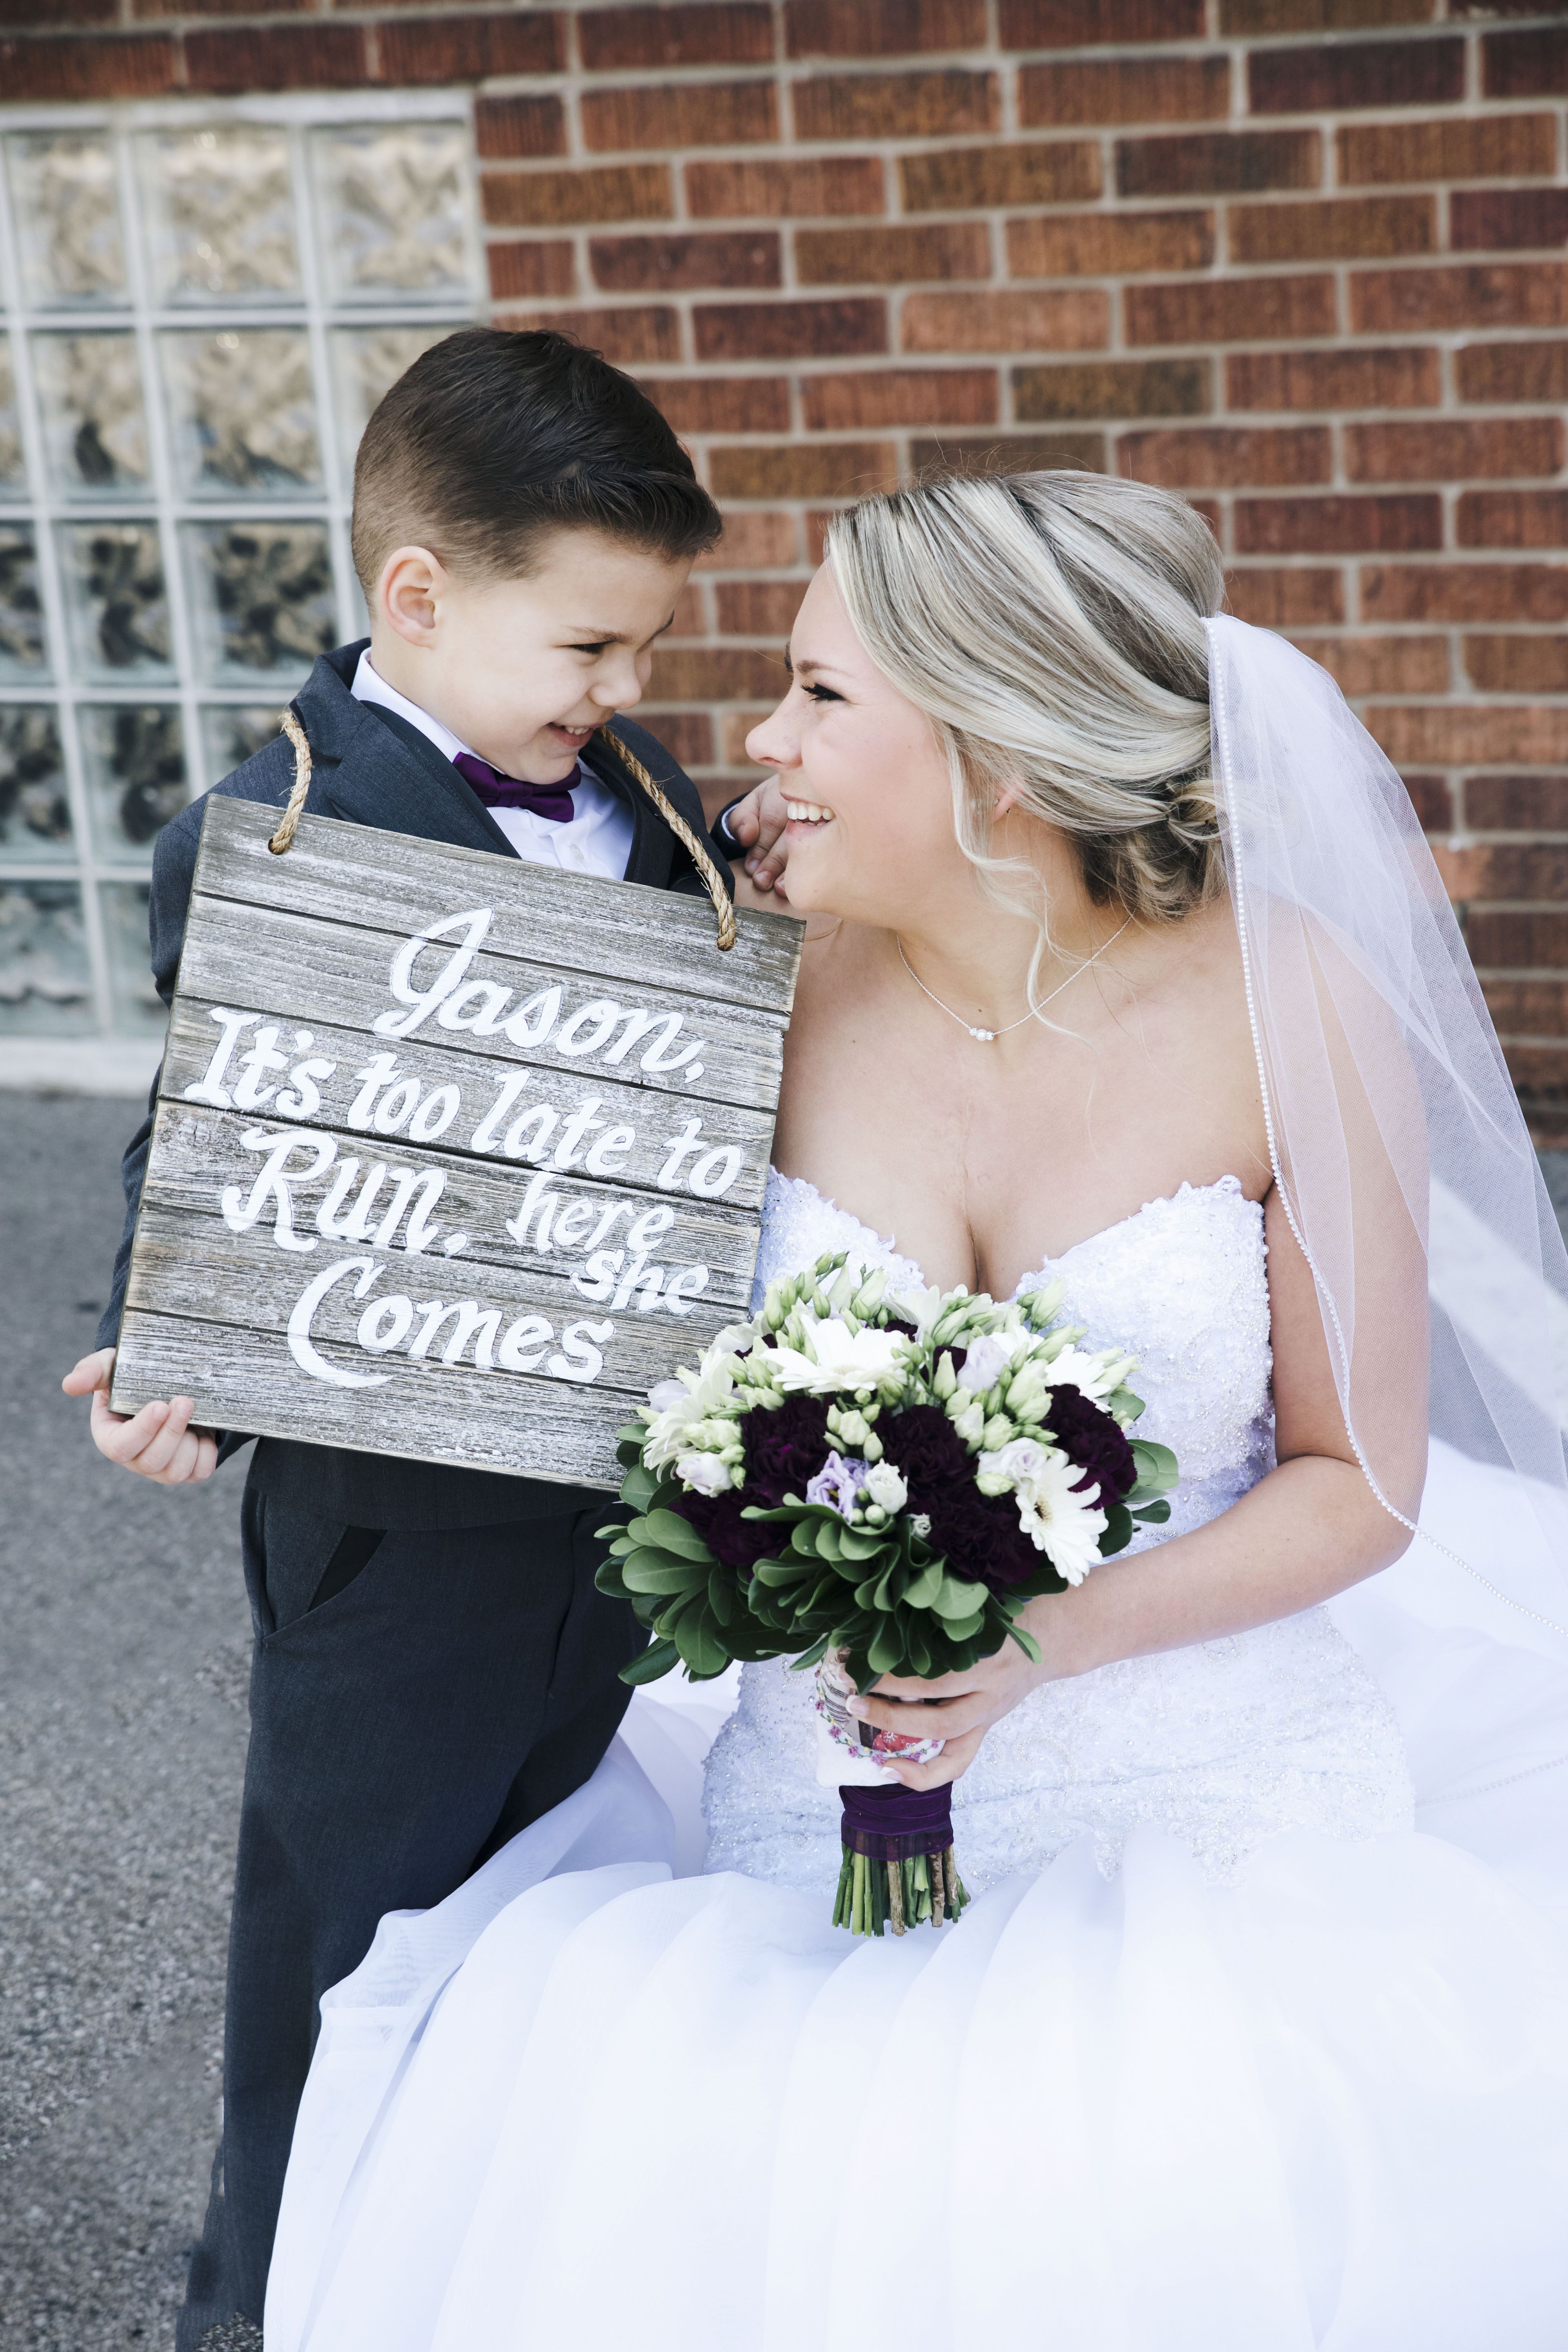 Bride and her ring bearer on her wedding day cute